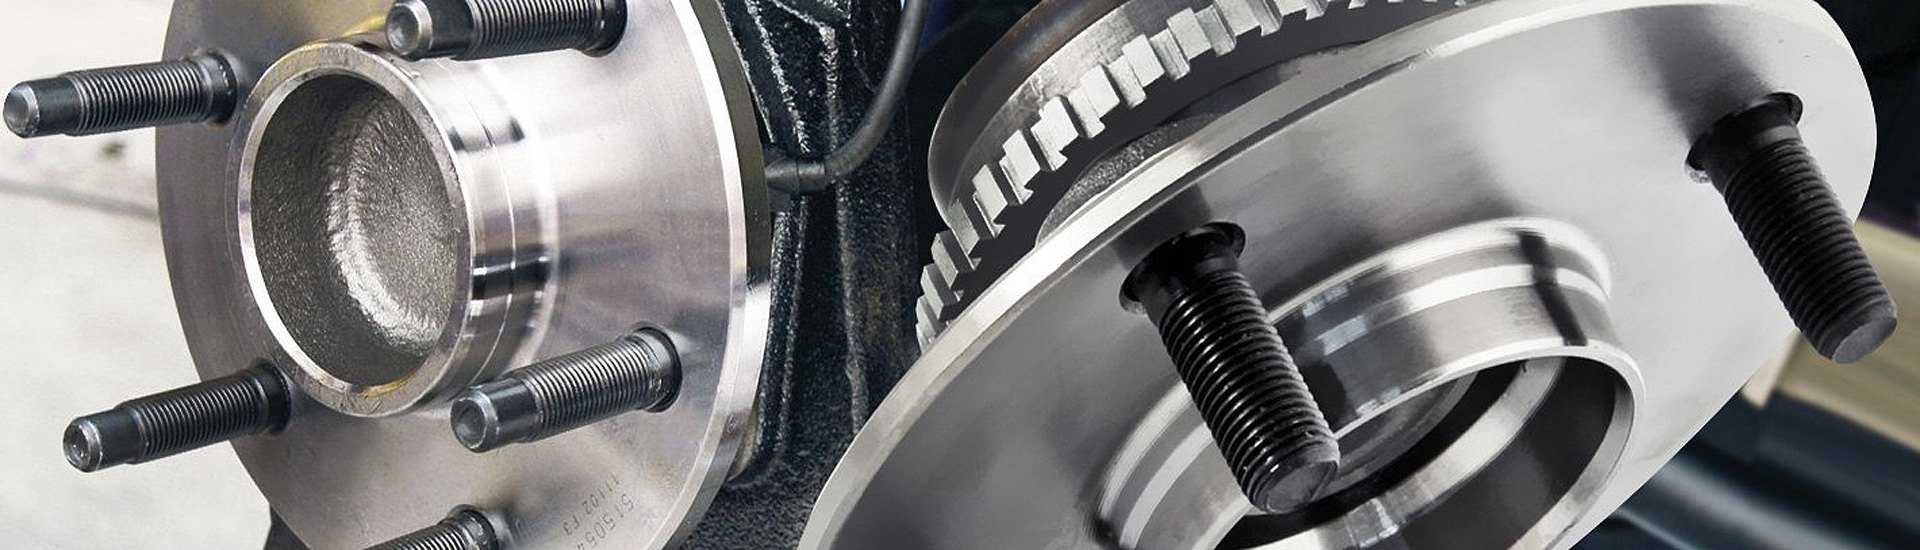 Wheel Bearings: Descriptions of Bearings, Races, Seals, and Hubs